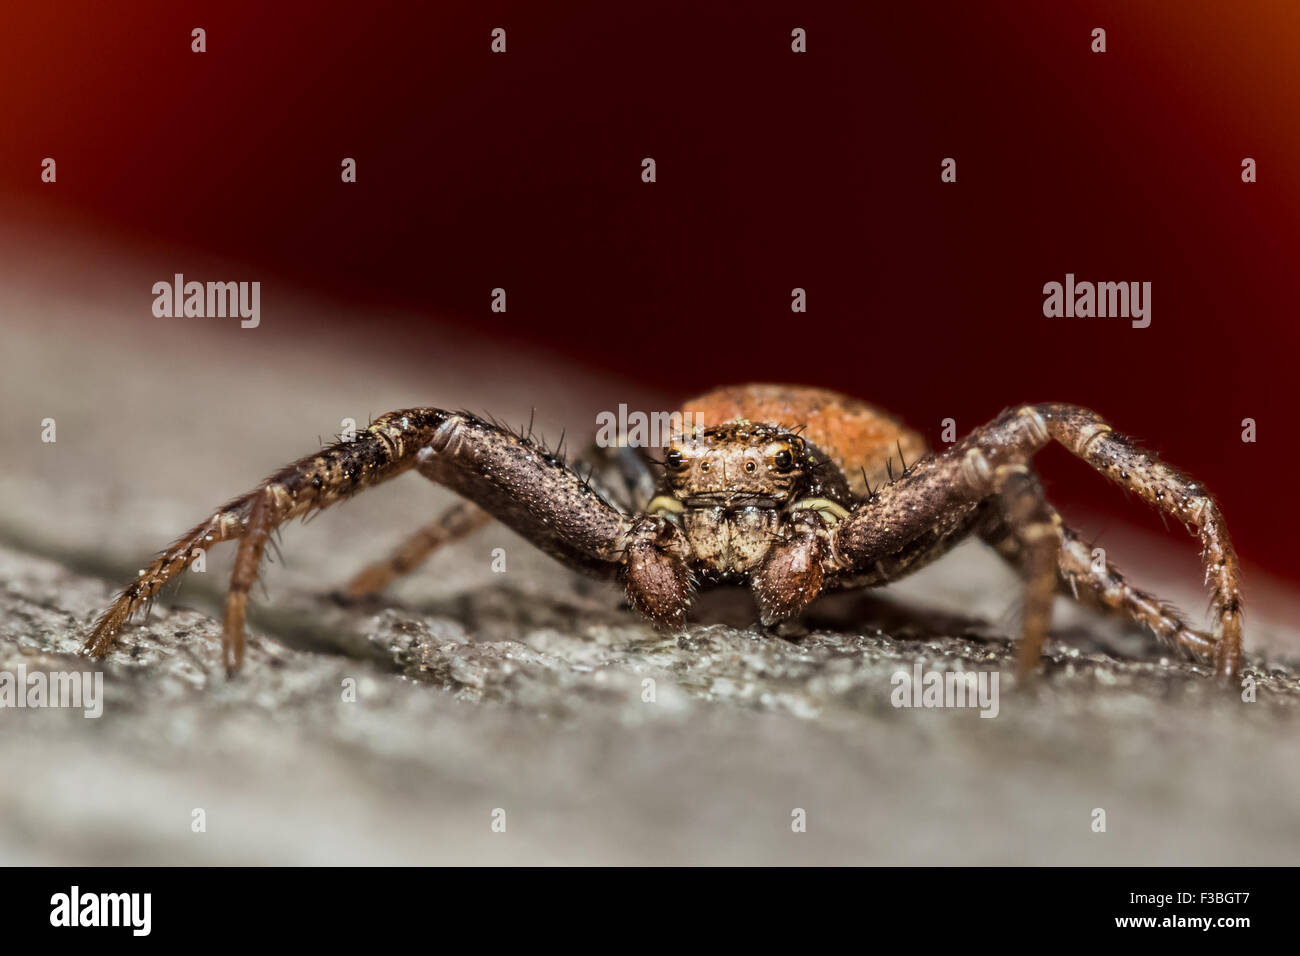 A male Xysticus sp. jumping spider - Stock Image